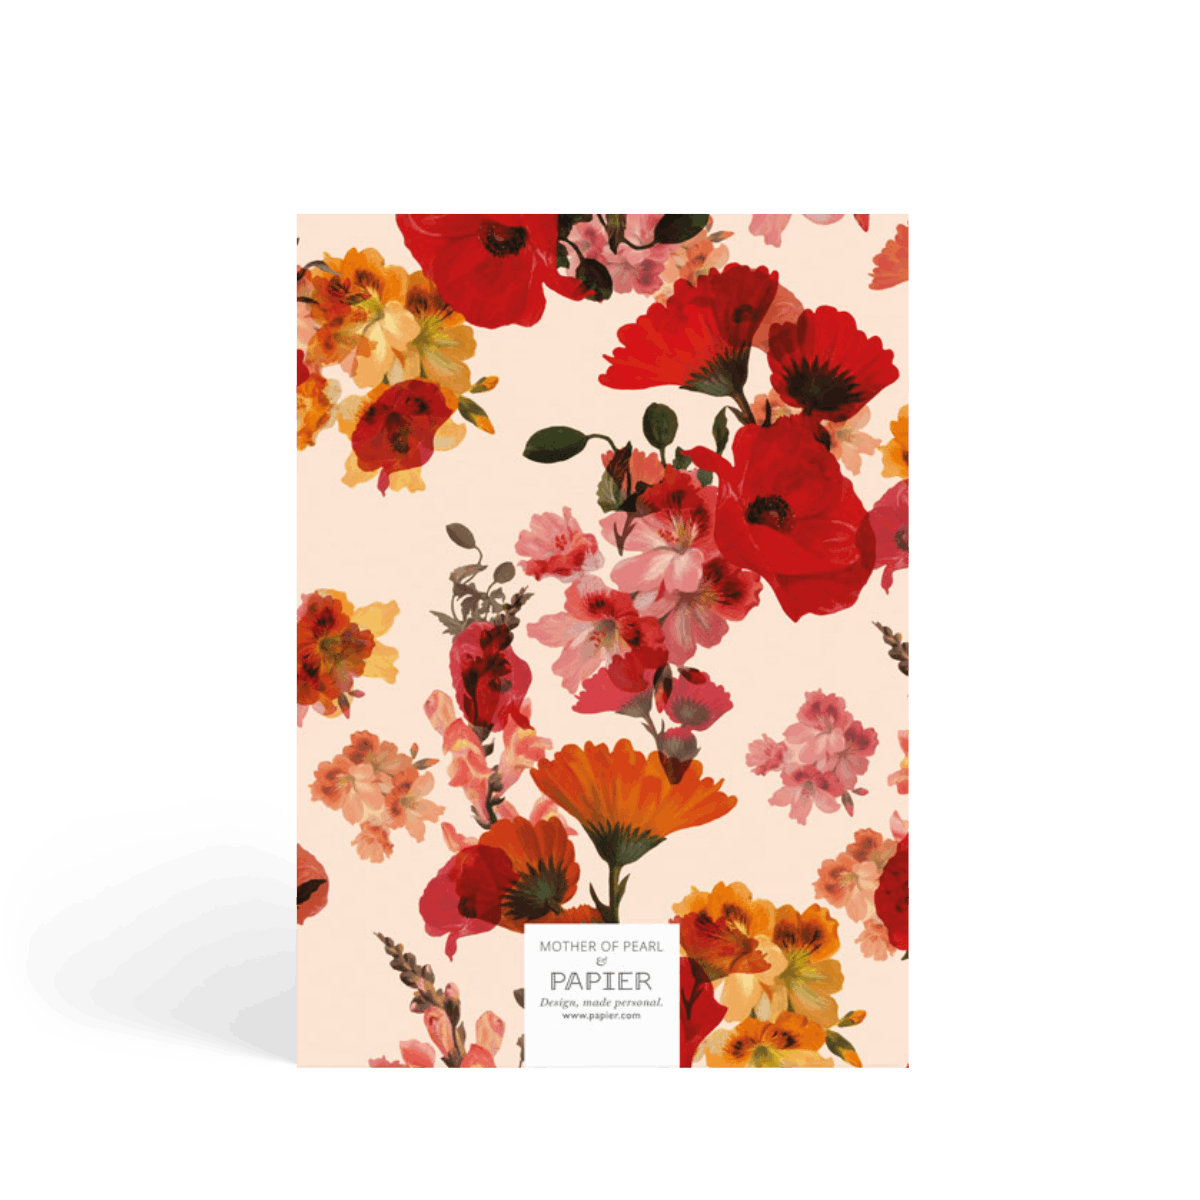 Https%3a%2f%2fwww.papier.com%2fproduct image%2f46352%2f5%2fcordelia floral 11427 arriere 1537438391.png?ixlib=rb 1.1